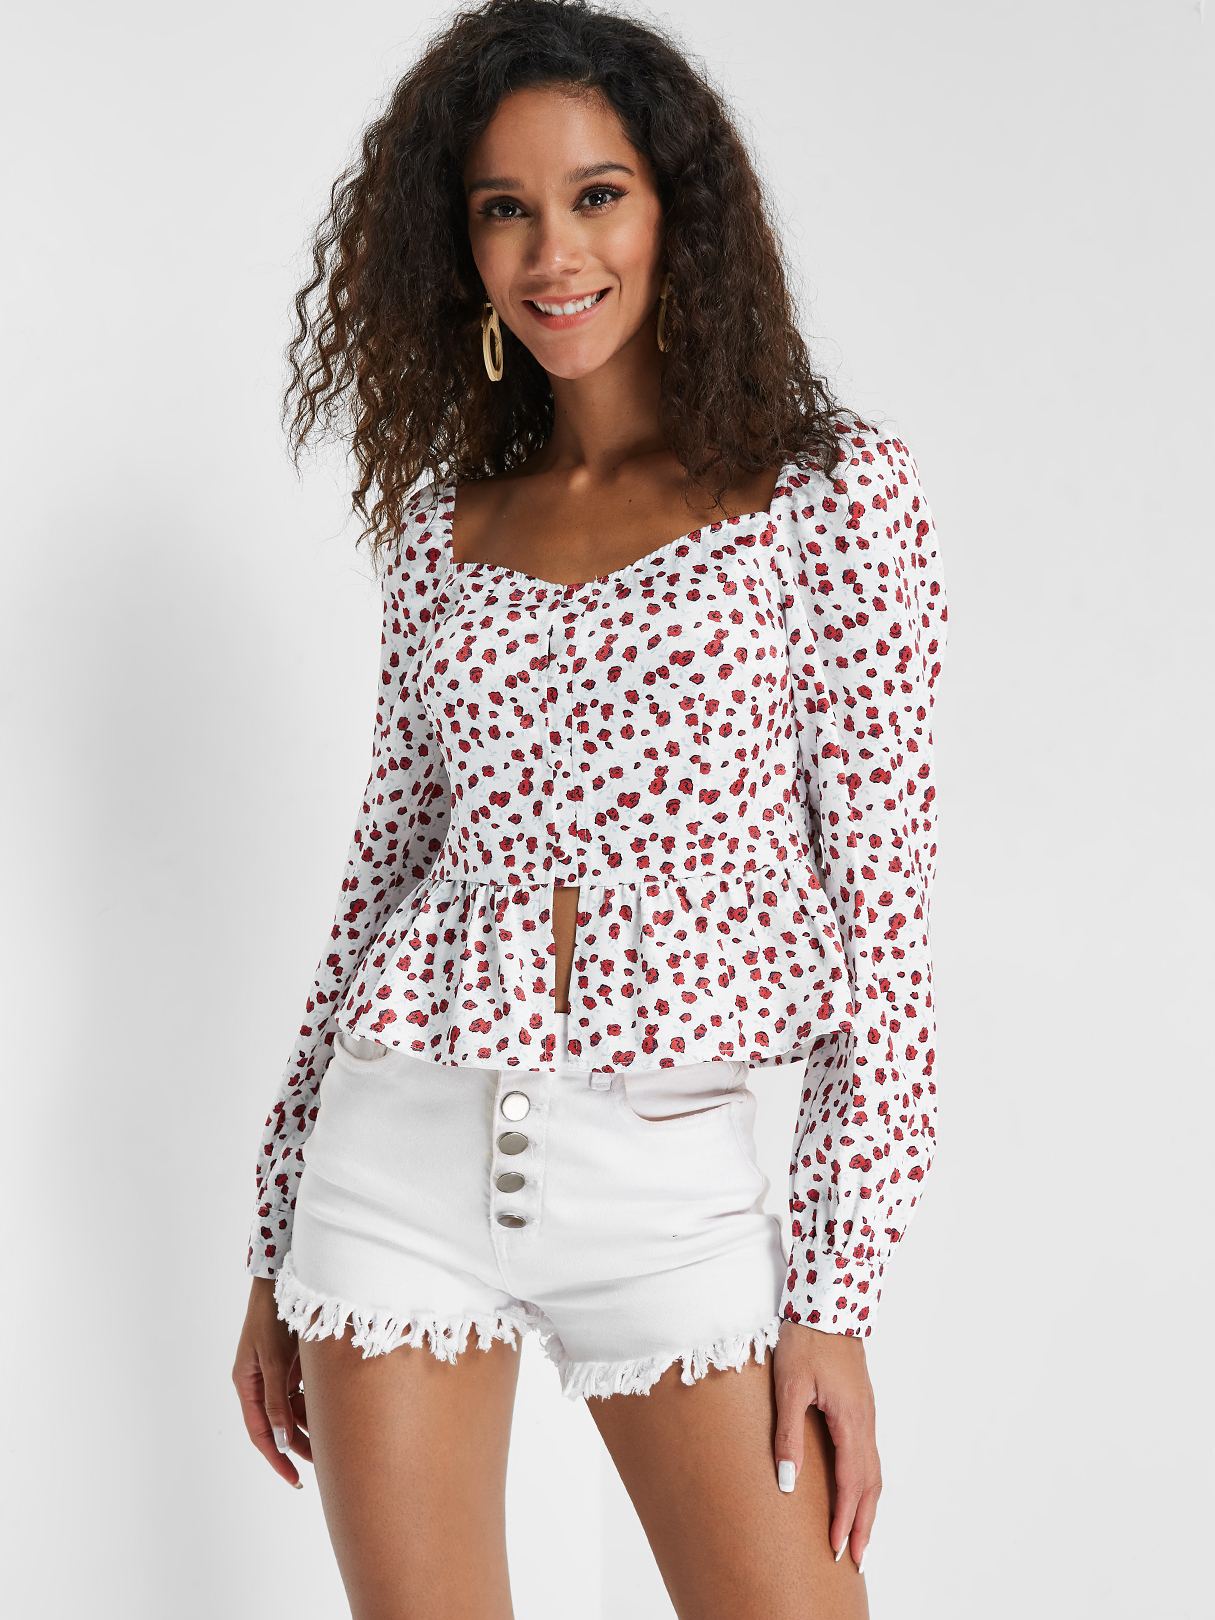 White Ruffle Trim Cherry Floral Print Blouse, YOINS  - buy with discount